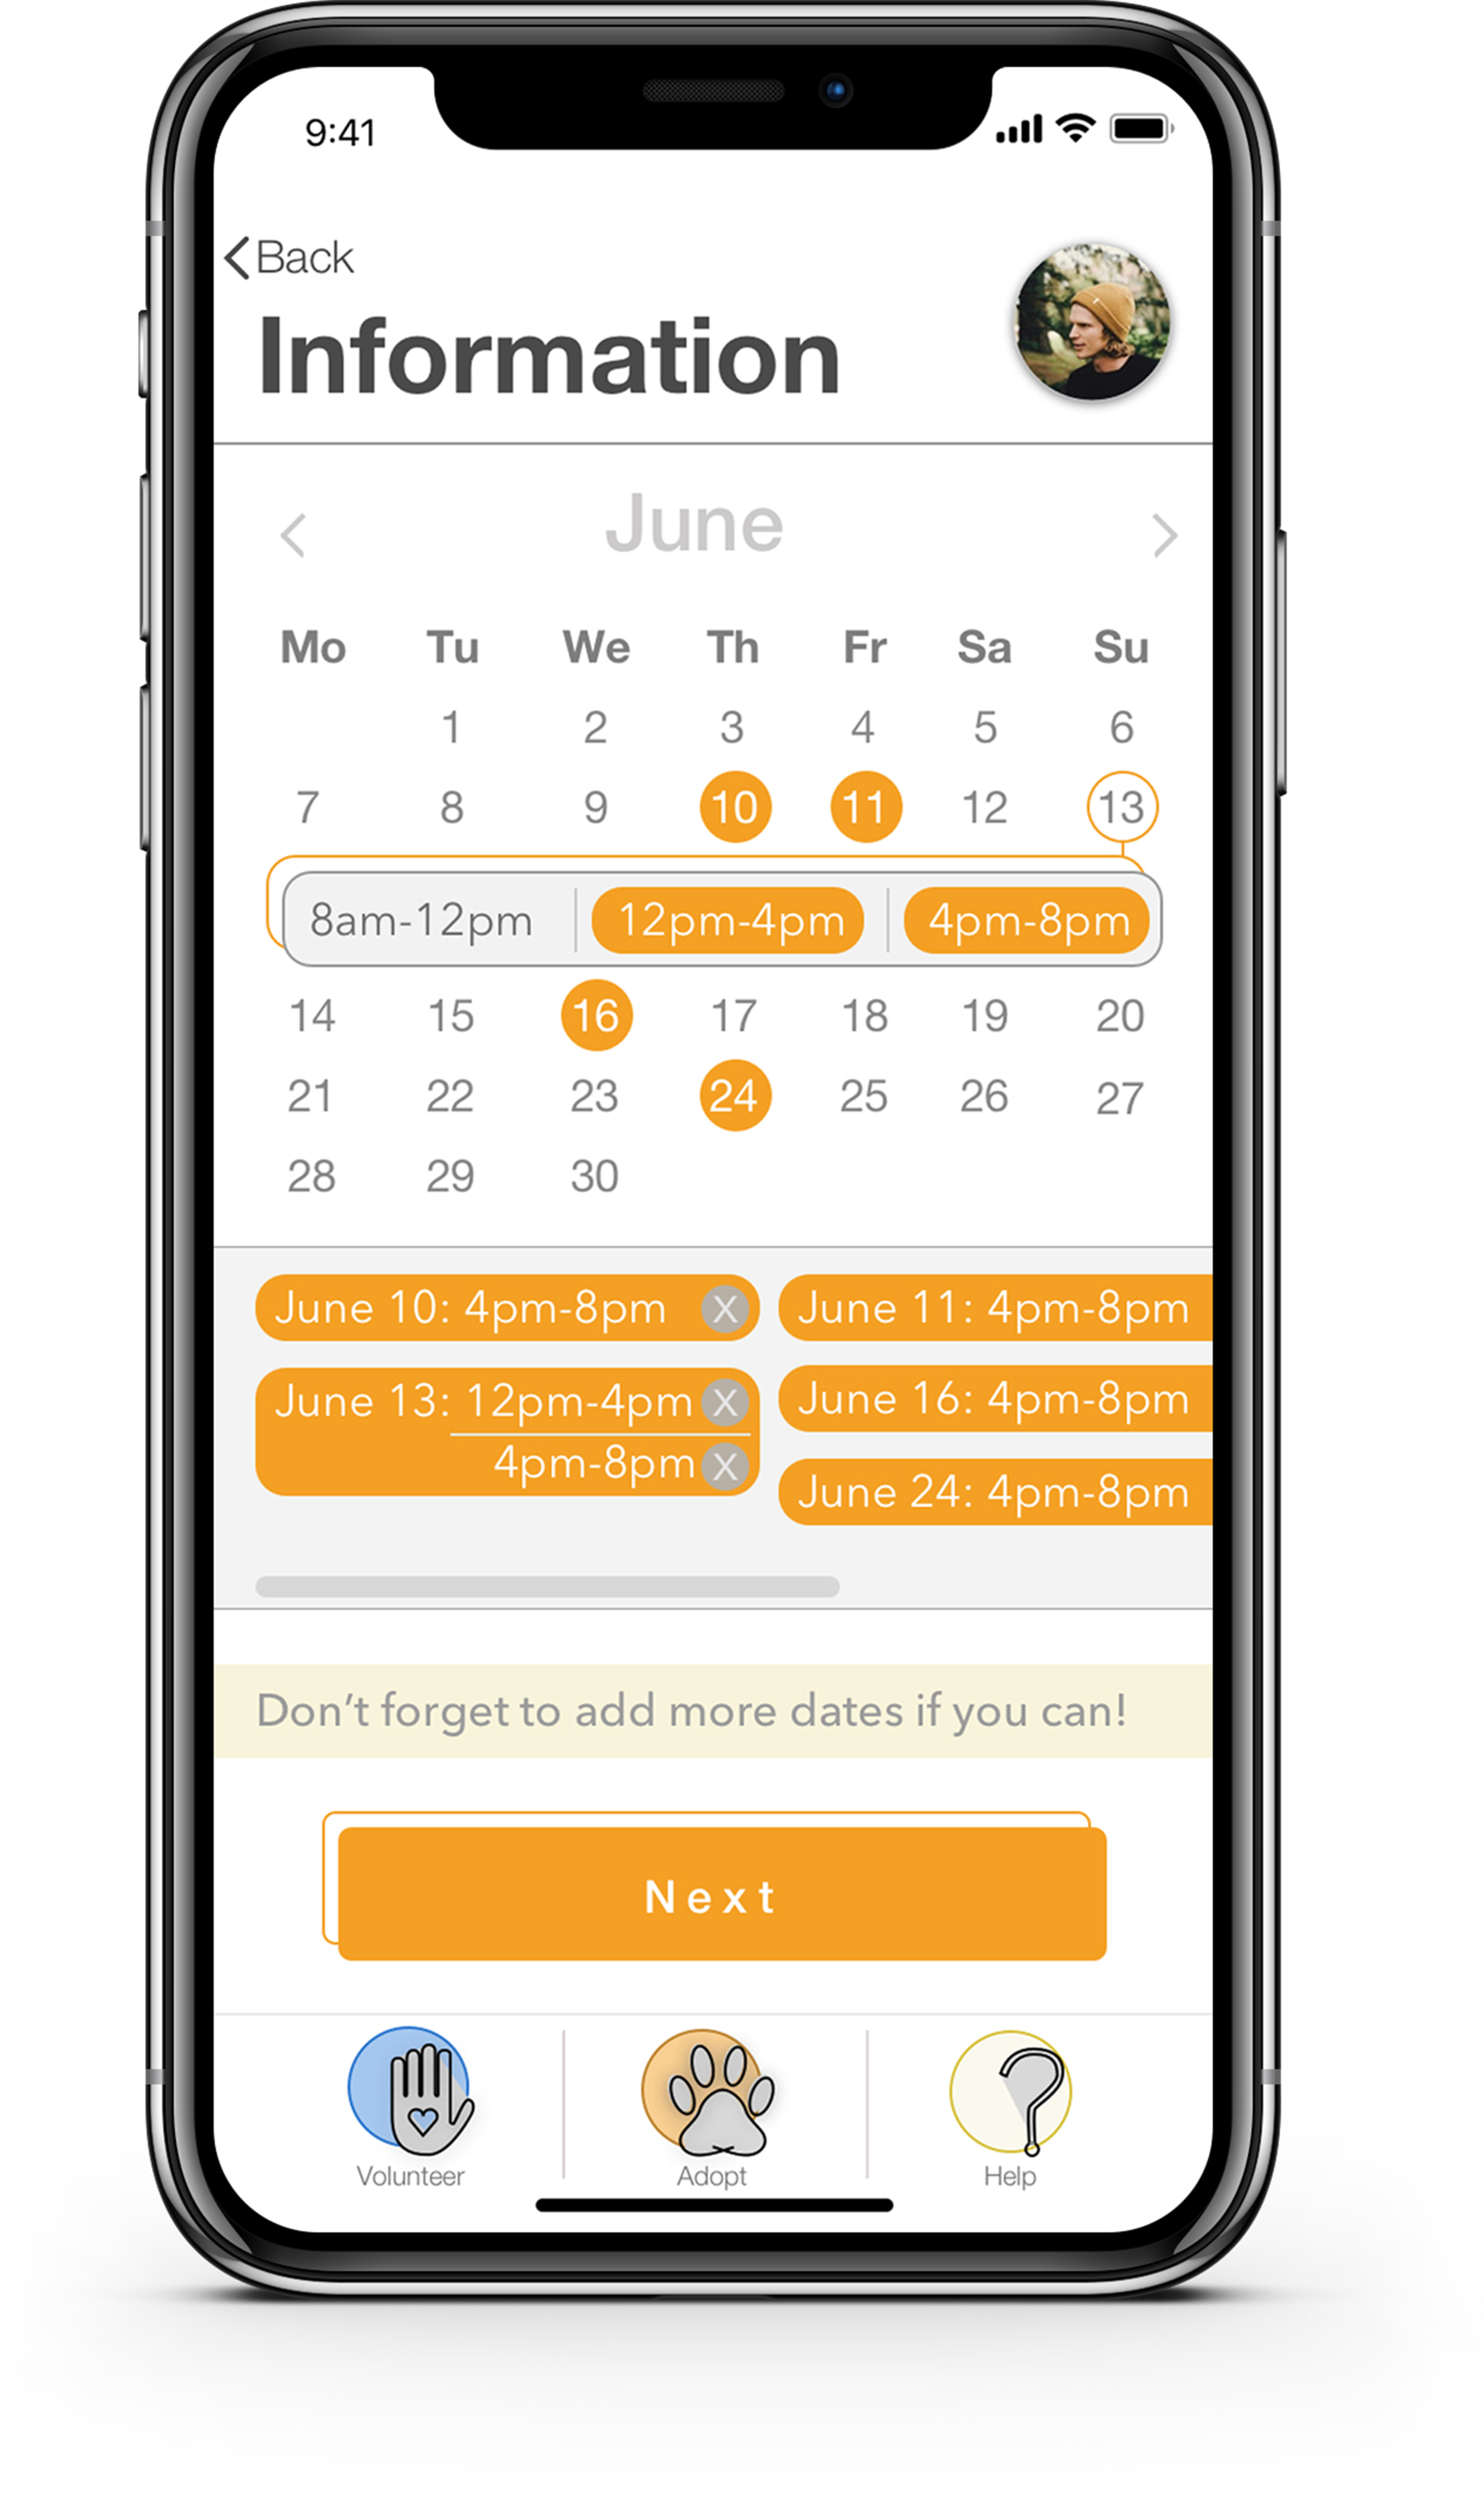 The calendar is central to the design of inu. With this design, I aim to start the process of  standardizing volunteer times . If a user can select their availability in advance, the shelter must then select from that availability.  This can take some of the complexity out of the current method  of finding shelter volunteer opportunities.